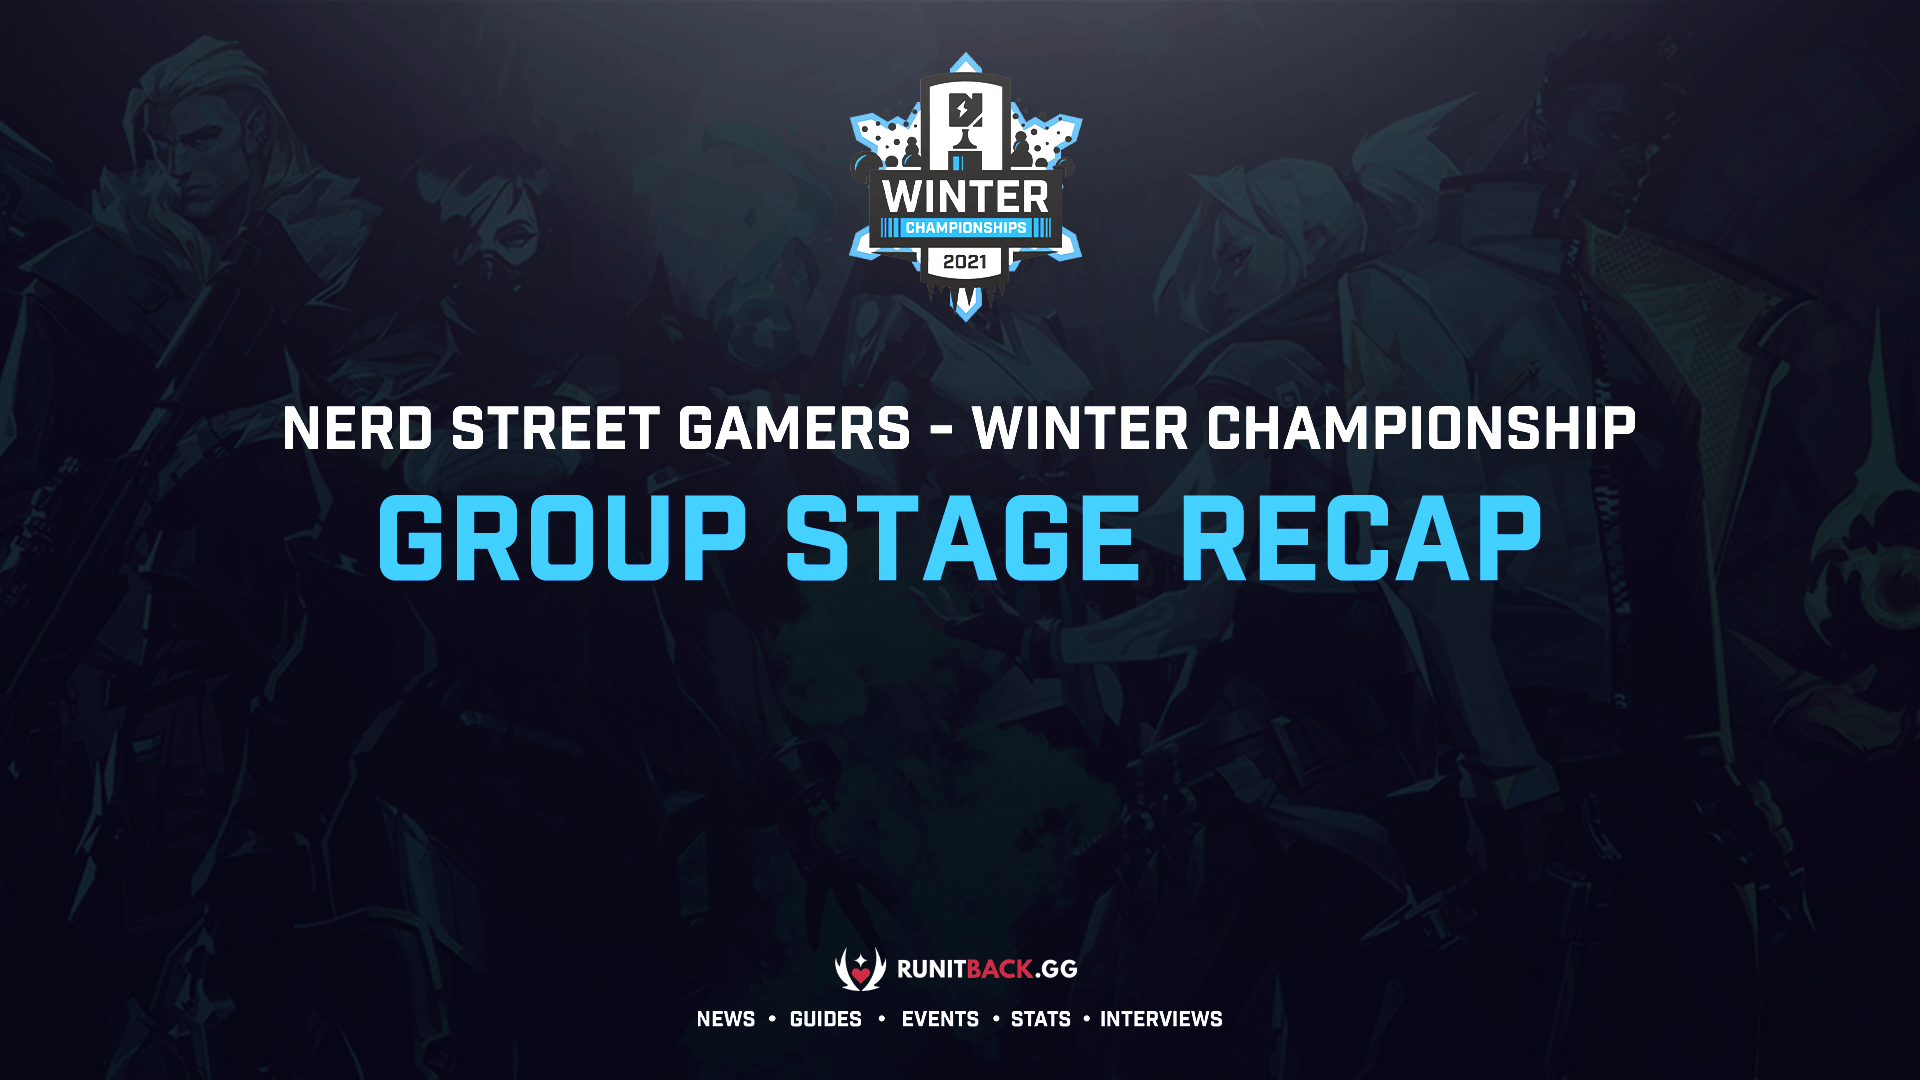 Nerd Street Gamers Winter Championship Group Stage Results